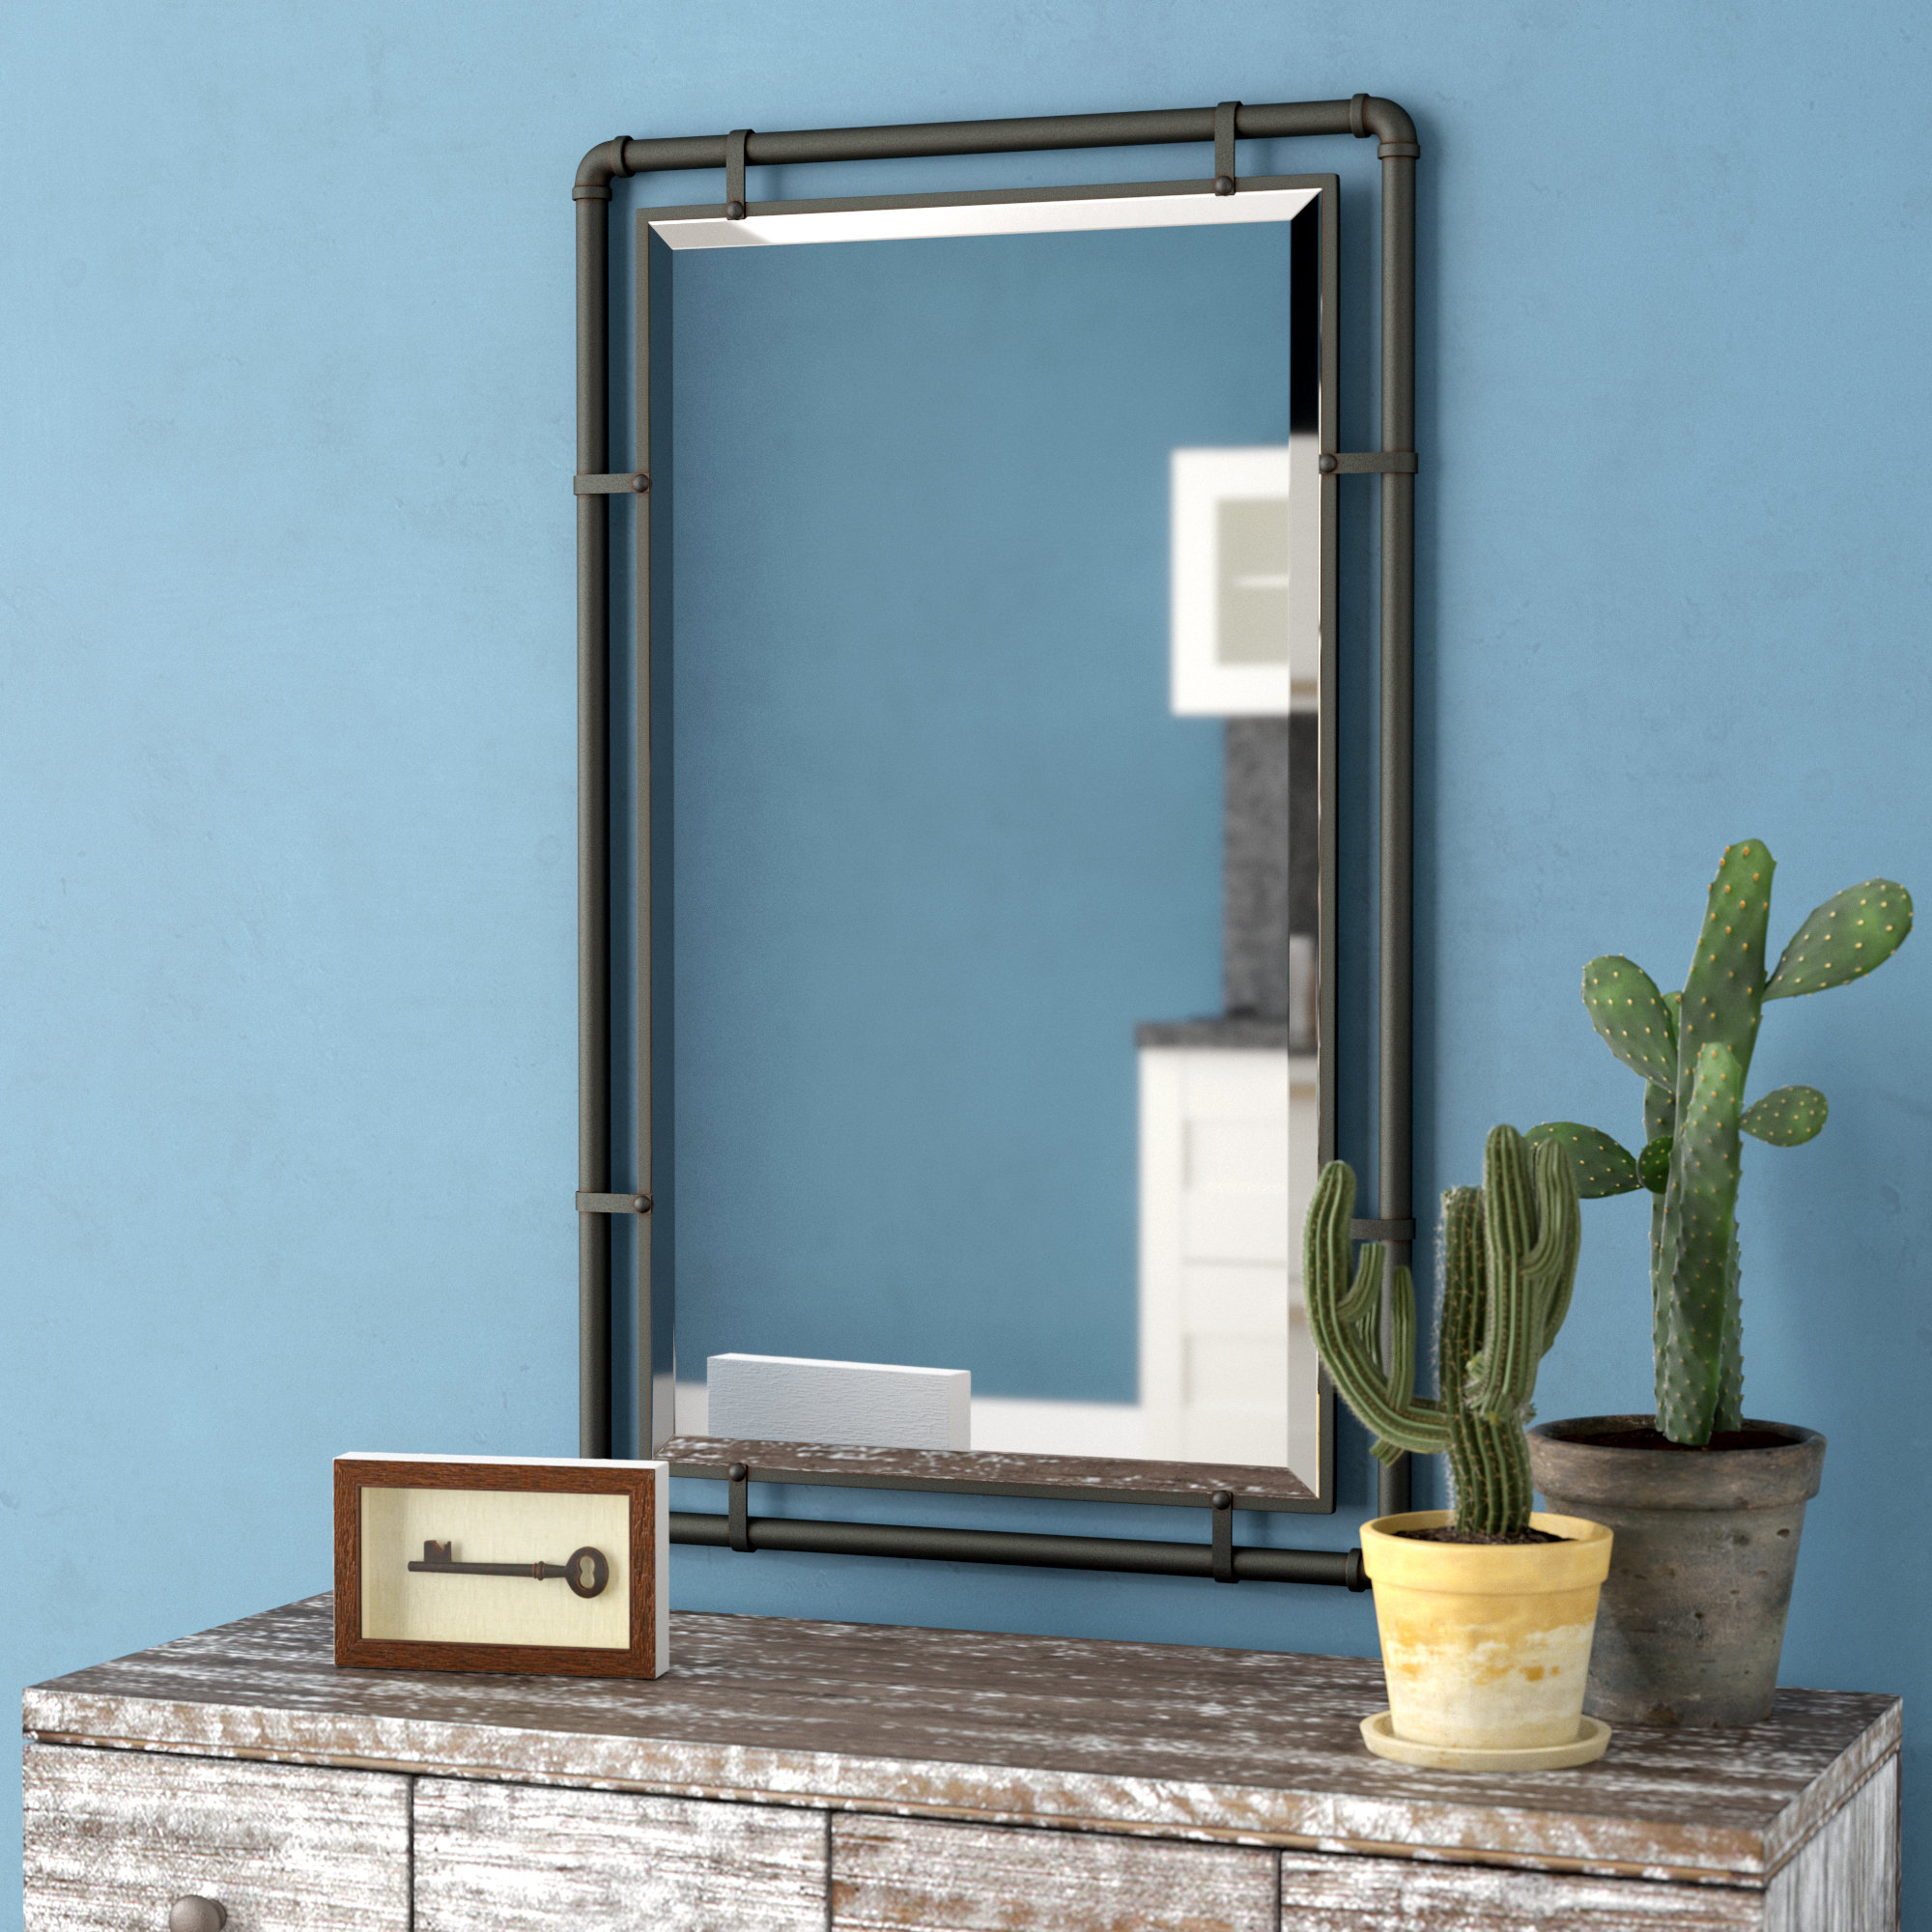 Williston Forge Koeller Industrial Metal Wall Mirror Within Koeller Industrial Metal Wall Mirrors (View 2 of 20)